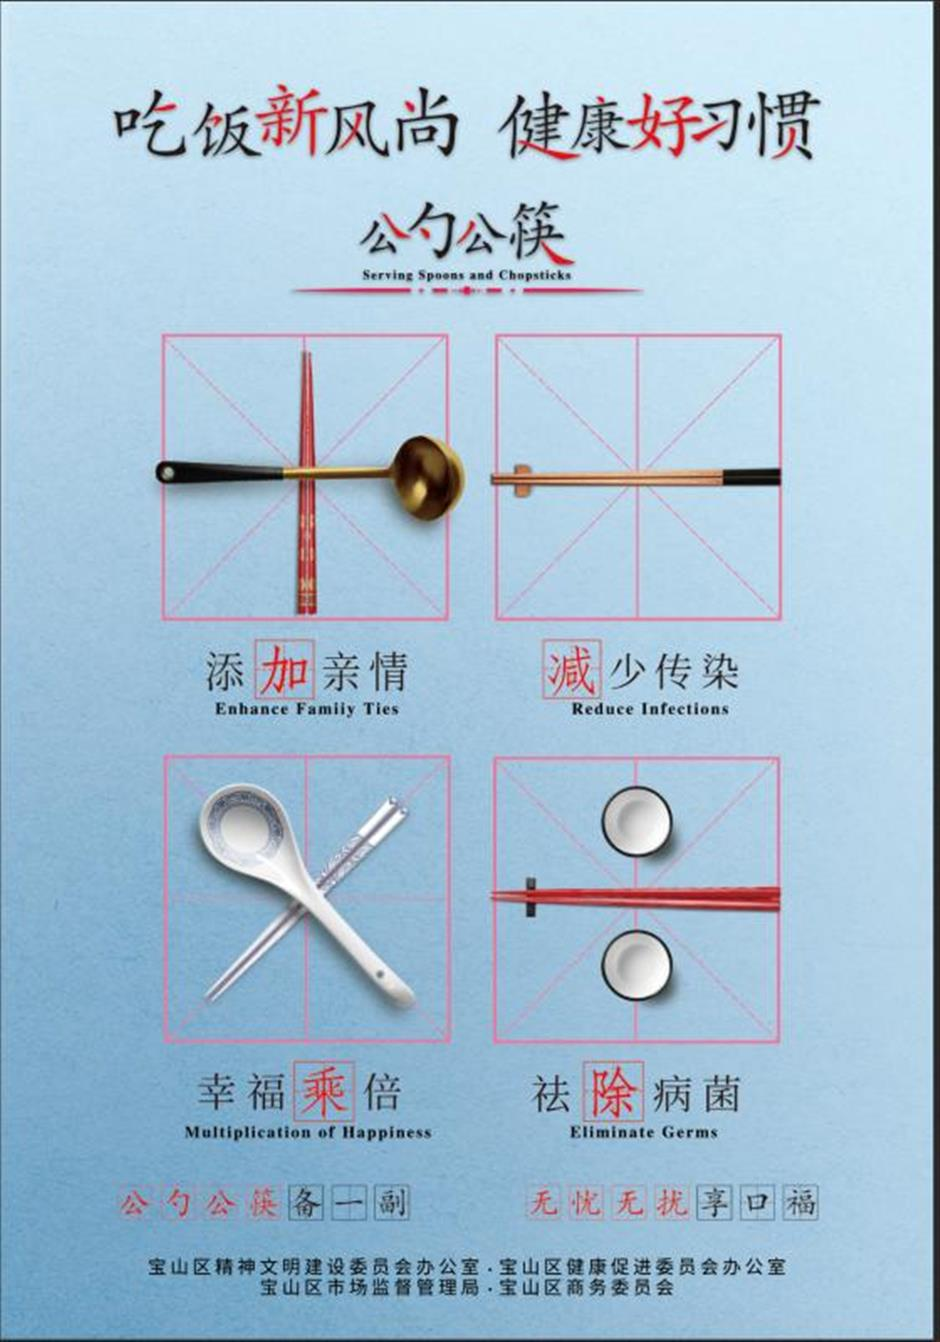 Serving utensils distributed among popular Baoshan restaurants